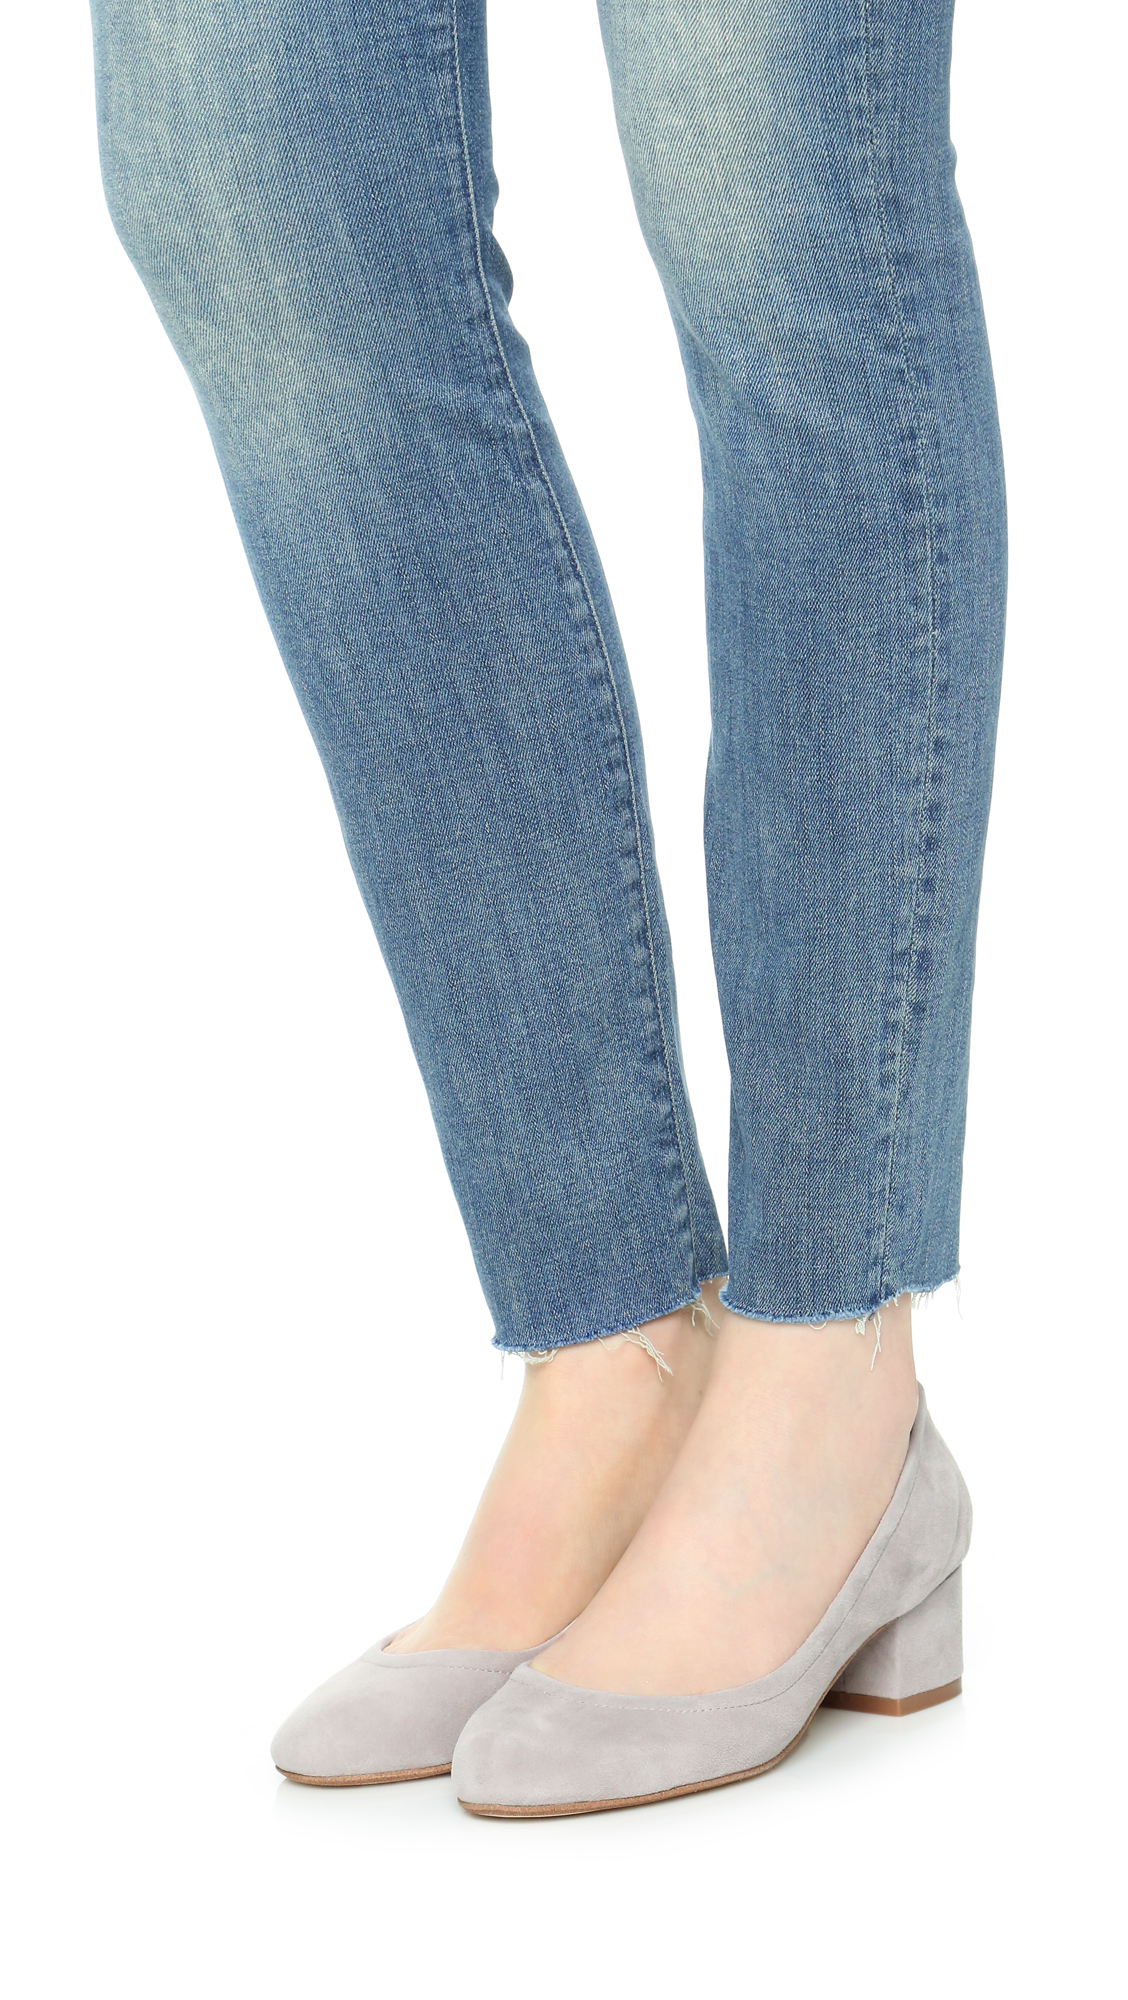 5832c86b412 Jeffrey Campbell Bitsie Pumps